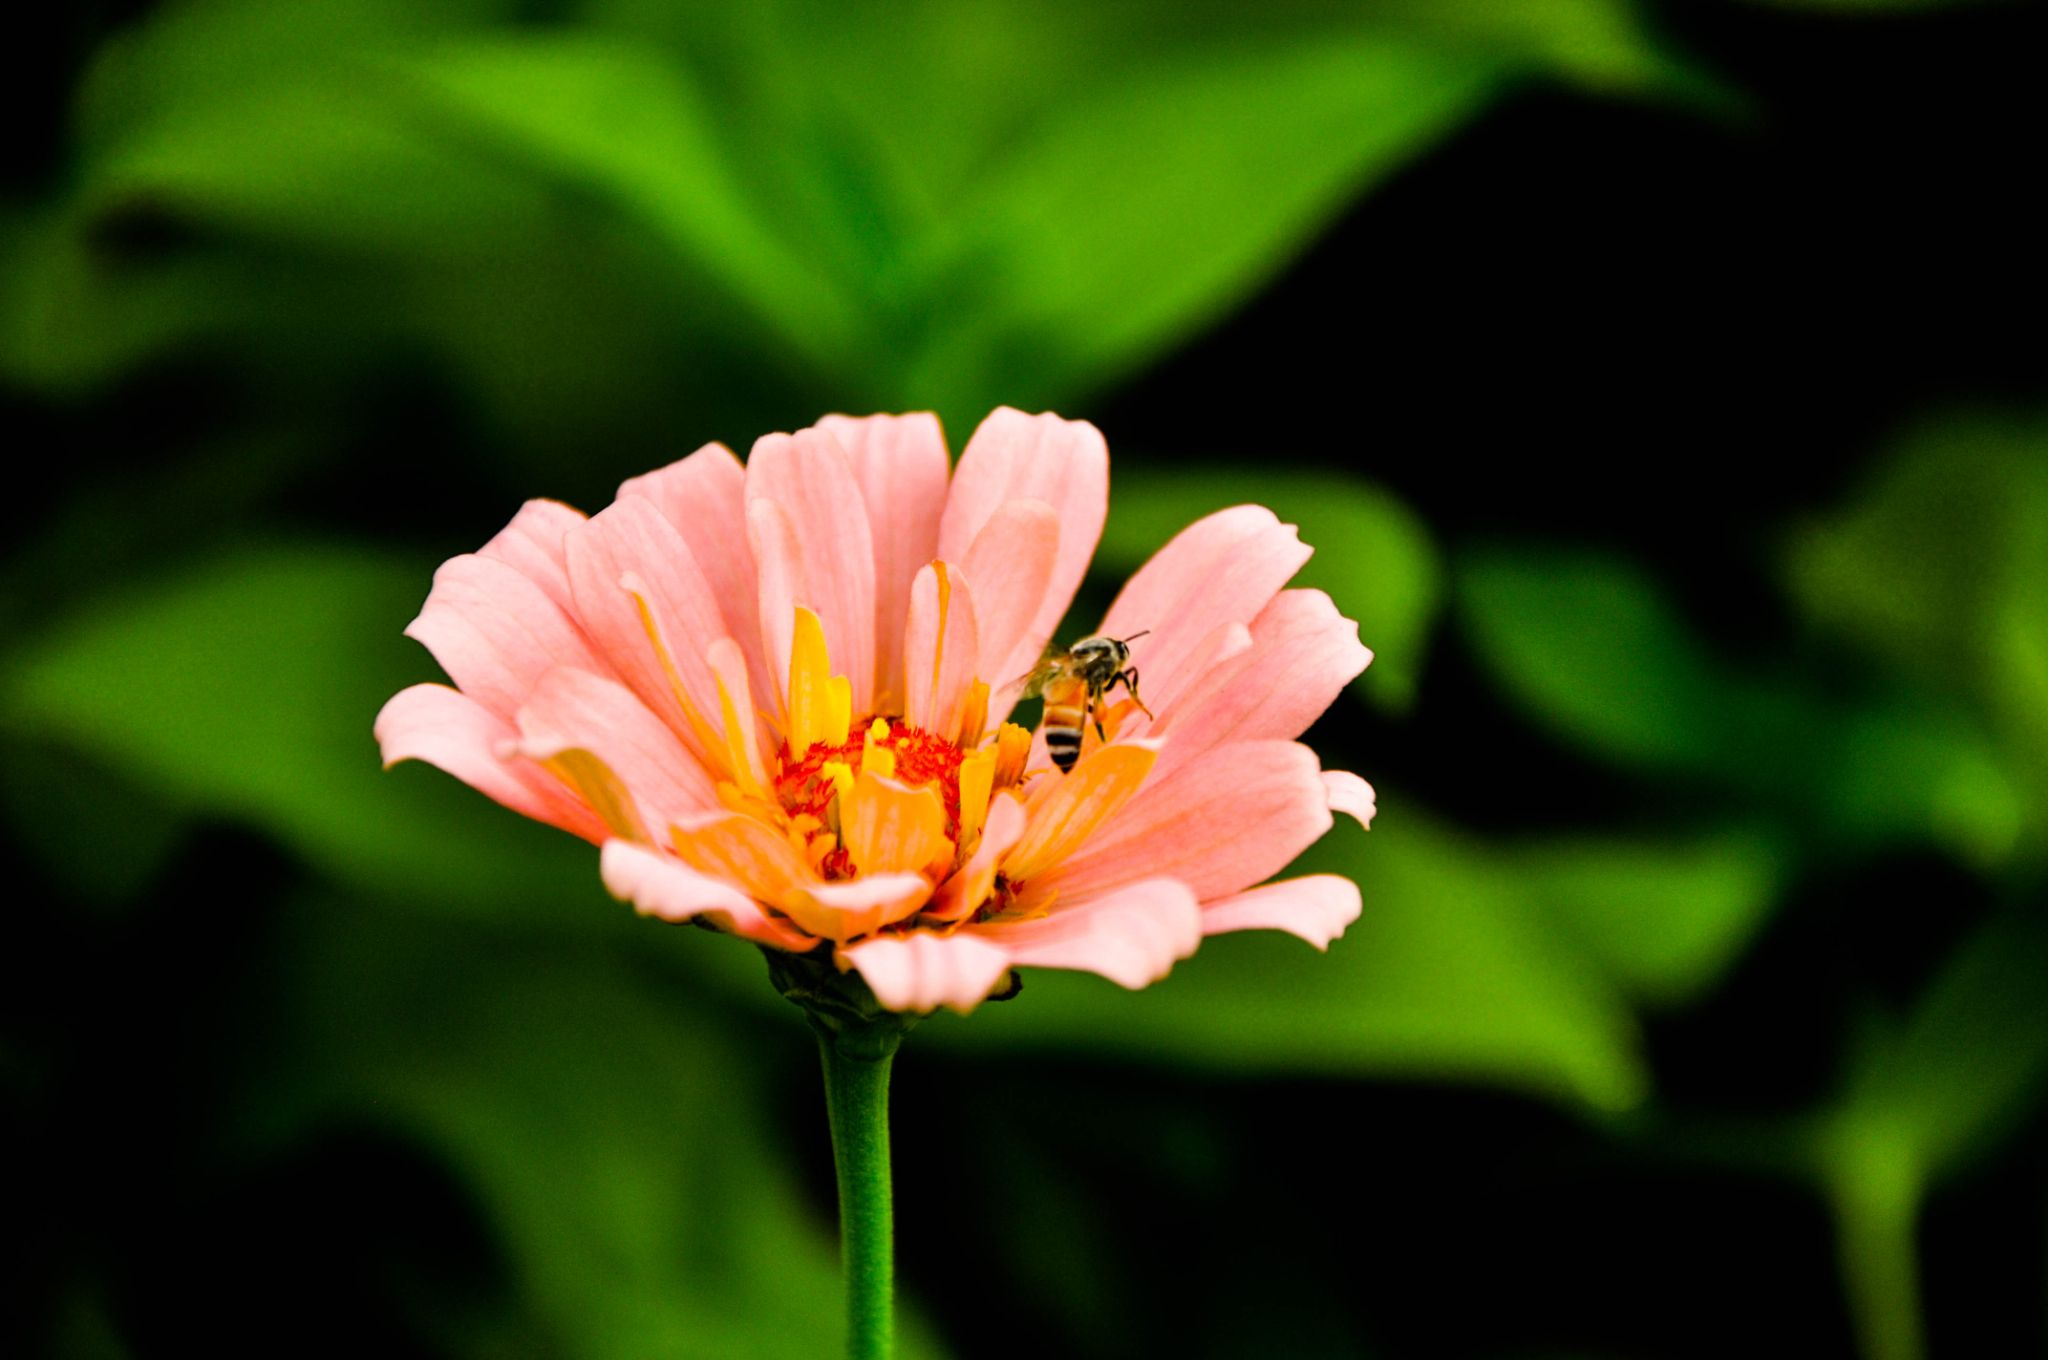 Busy Bee by photograffer